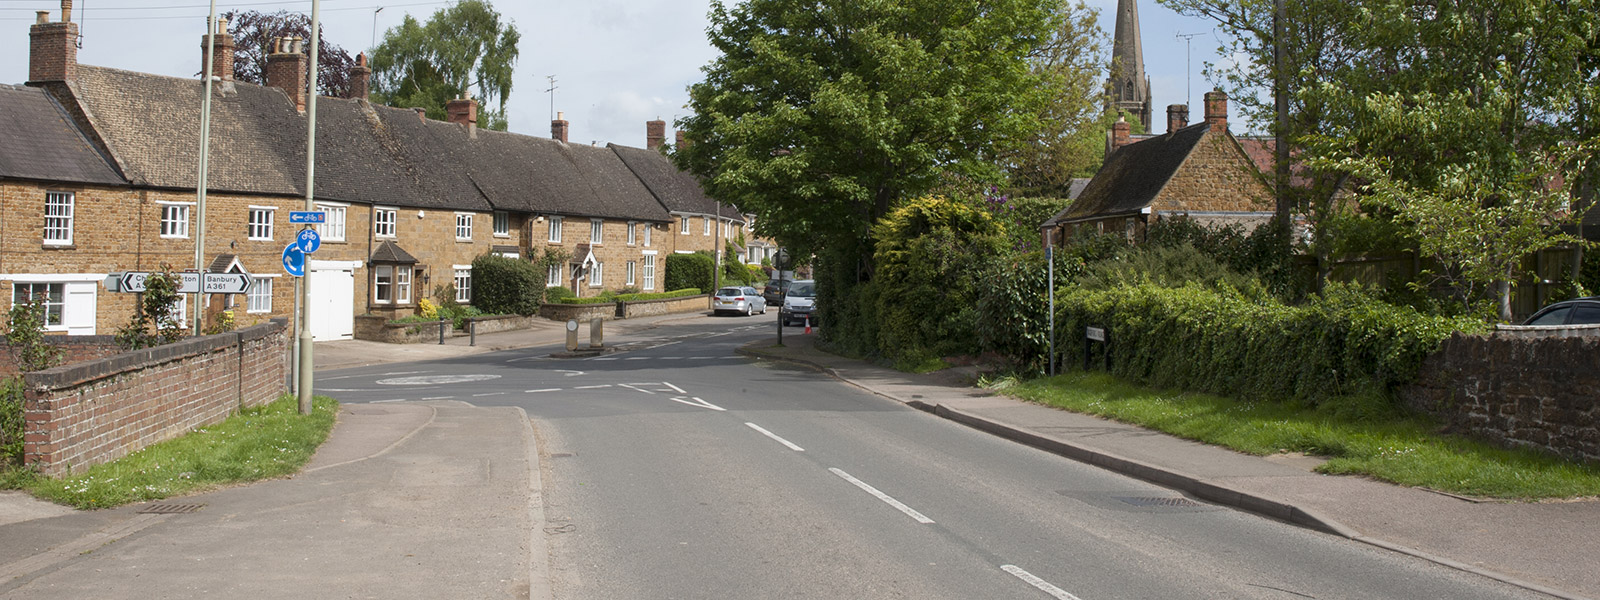 Photograph of Bloxham village